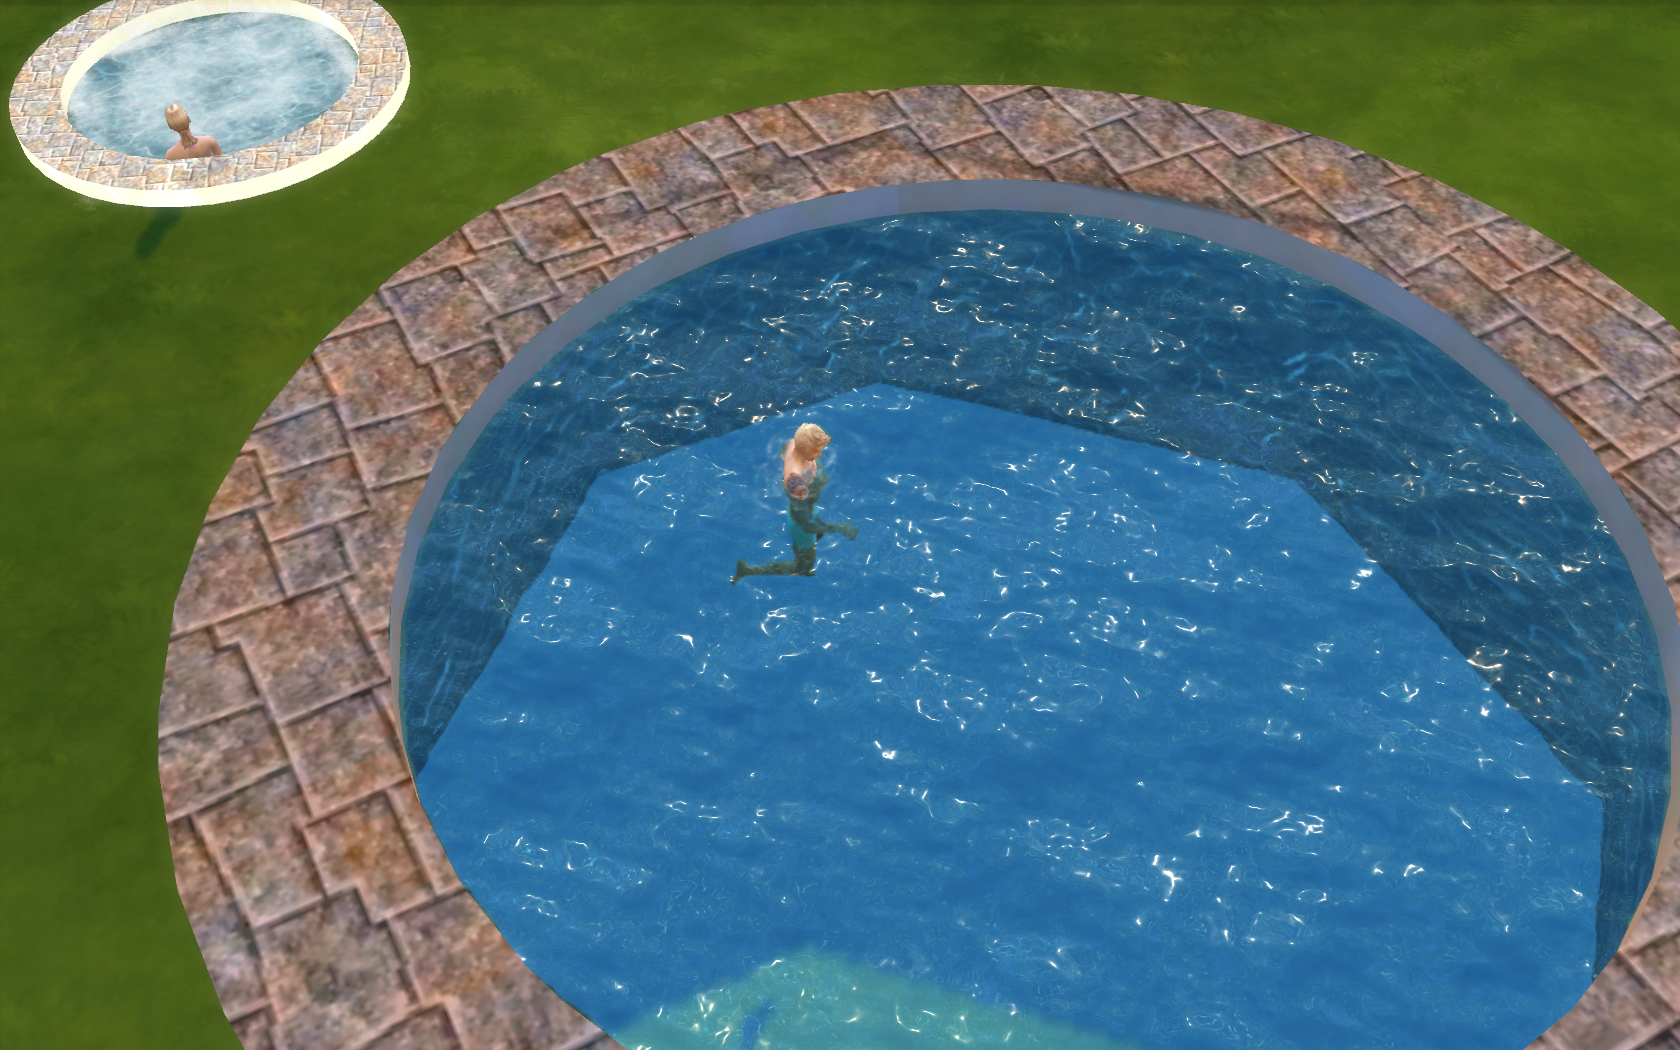 Mod The Sims - Matching Pool Frame and In-Ground Hot Tub